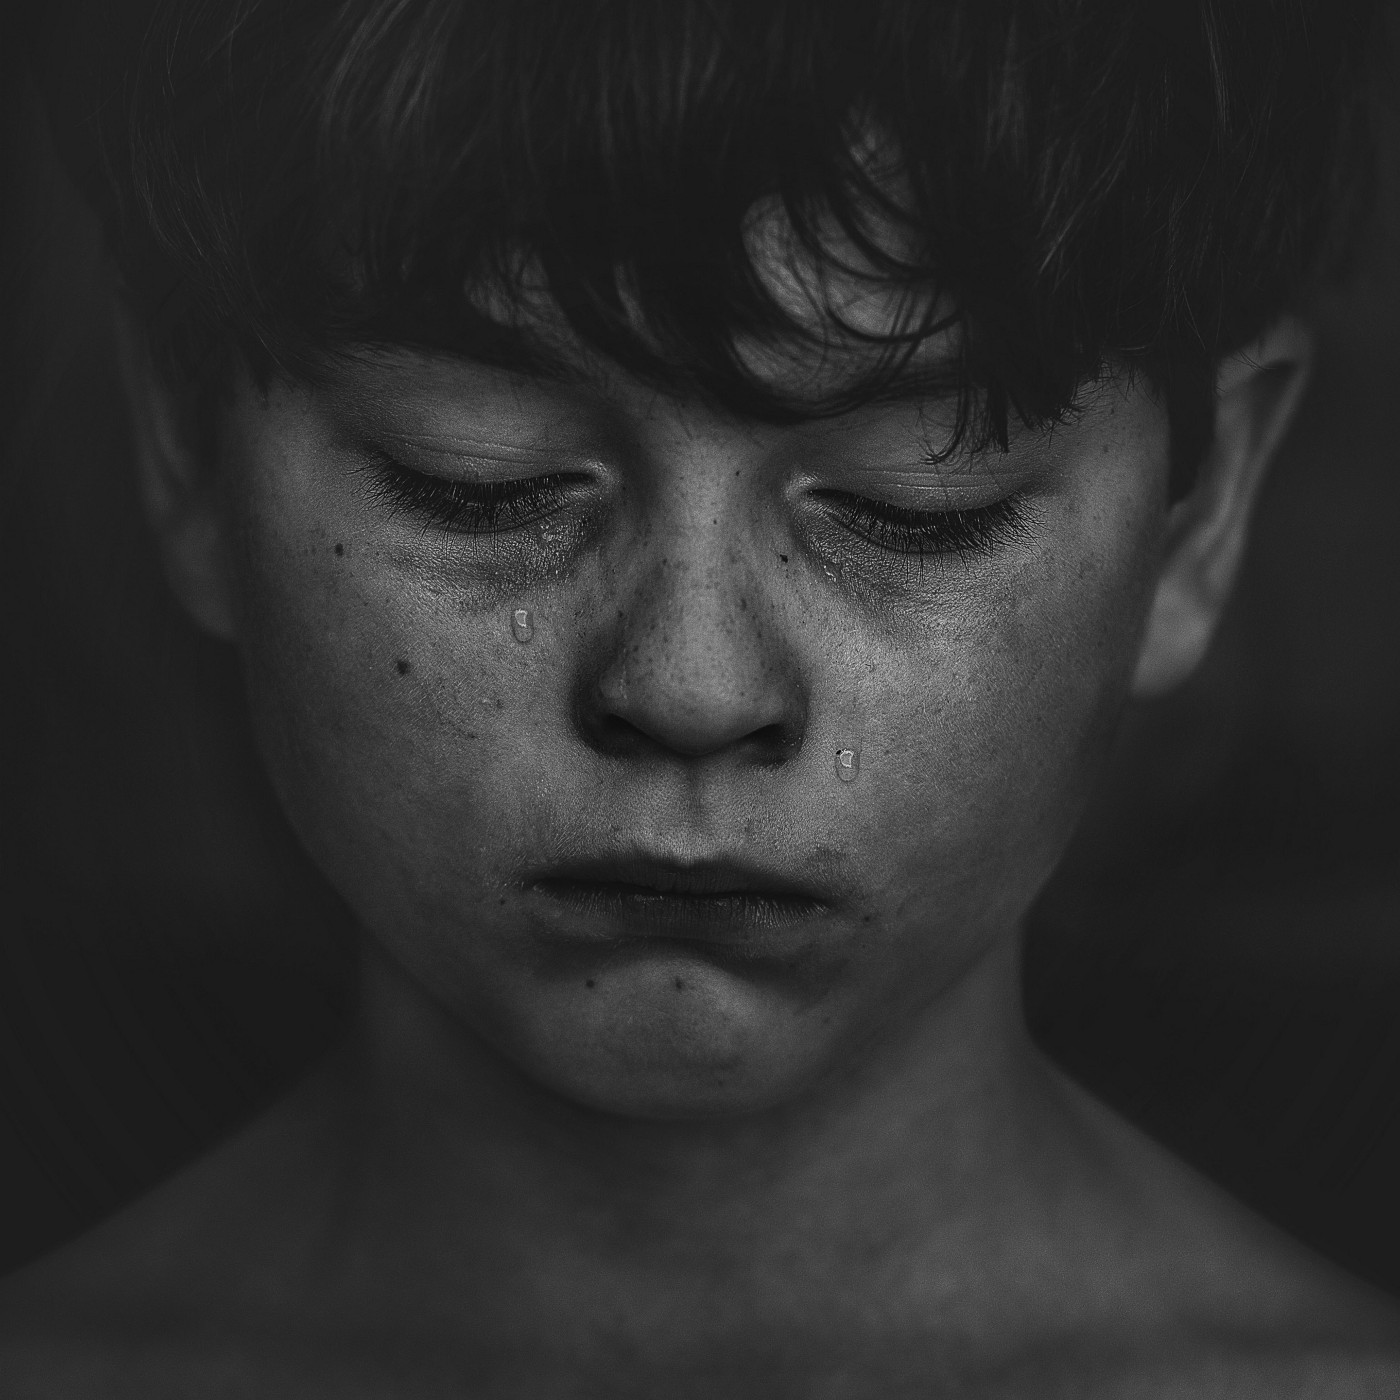 A child weeping in the dark shadows of his abuse.